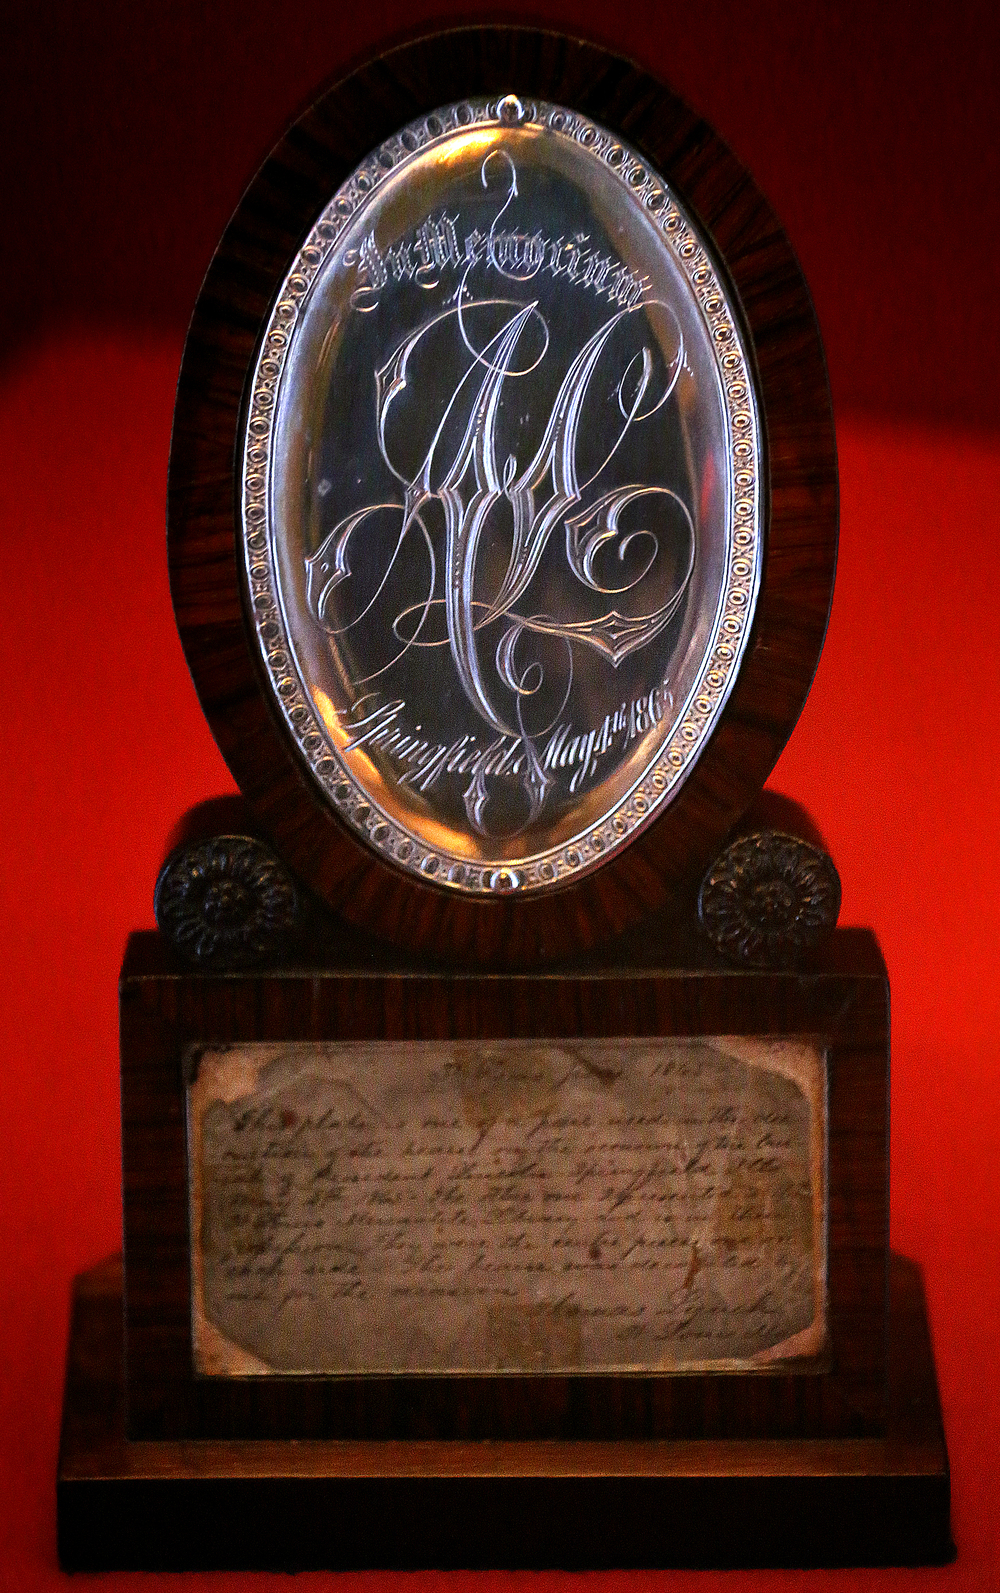 """One of two silver medallions from the hearse that carried Abraham Lincoln to his grave are on display as part of the exhibit. The elaborate gothic script on the medallion reads: In Memoriam A.L. Springfield May 4th 1865.The new exhibit """"A Fiendish Assassination"""", opened in the Treasures Gallery at the Abraham Lincoln Presidential Museum in Springfield on April 2, 2015. Running until early July, the more than 40 artifacts displayed-many never before seen in public- show items related to Lincoln's death and funeral 150 years ago this year. David Spencer/The State Journal-Register"""